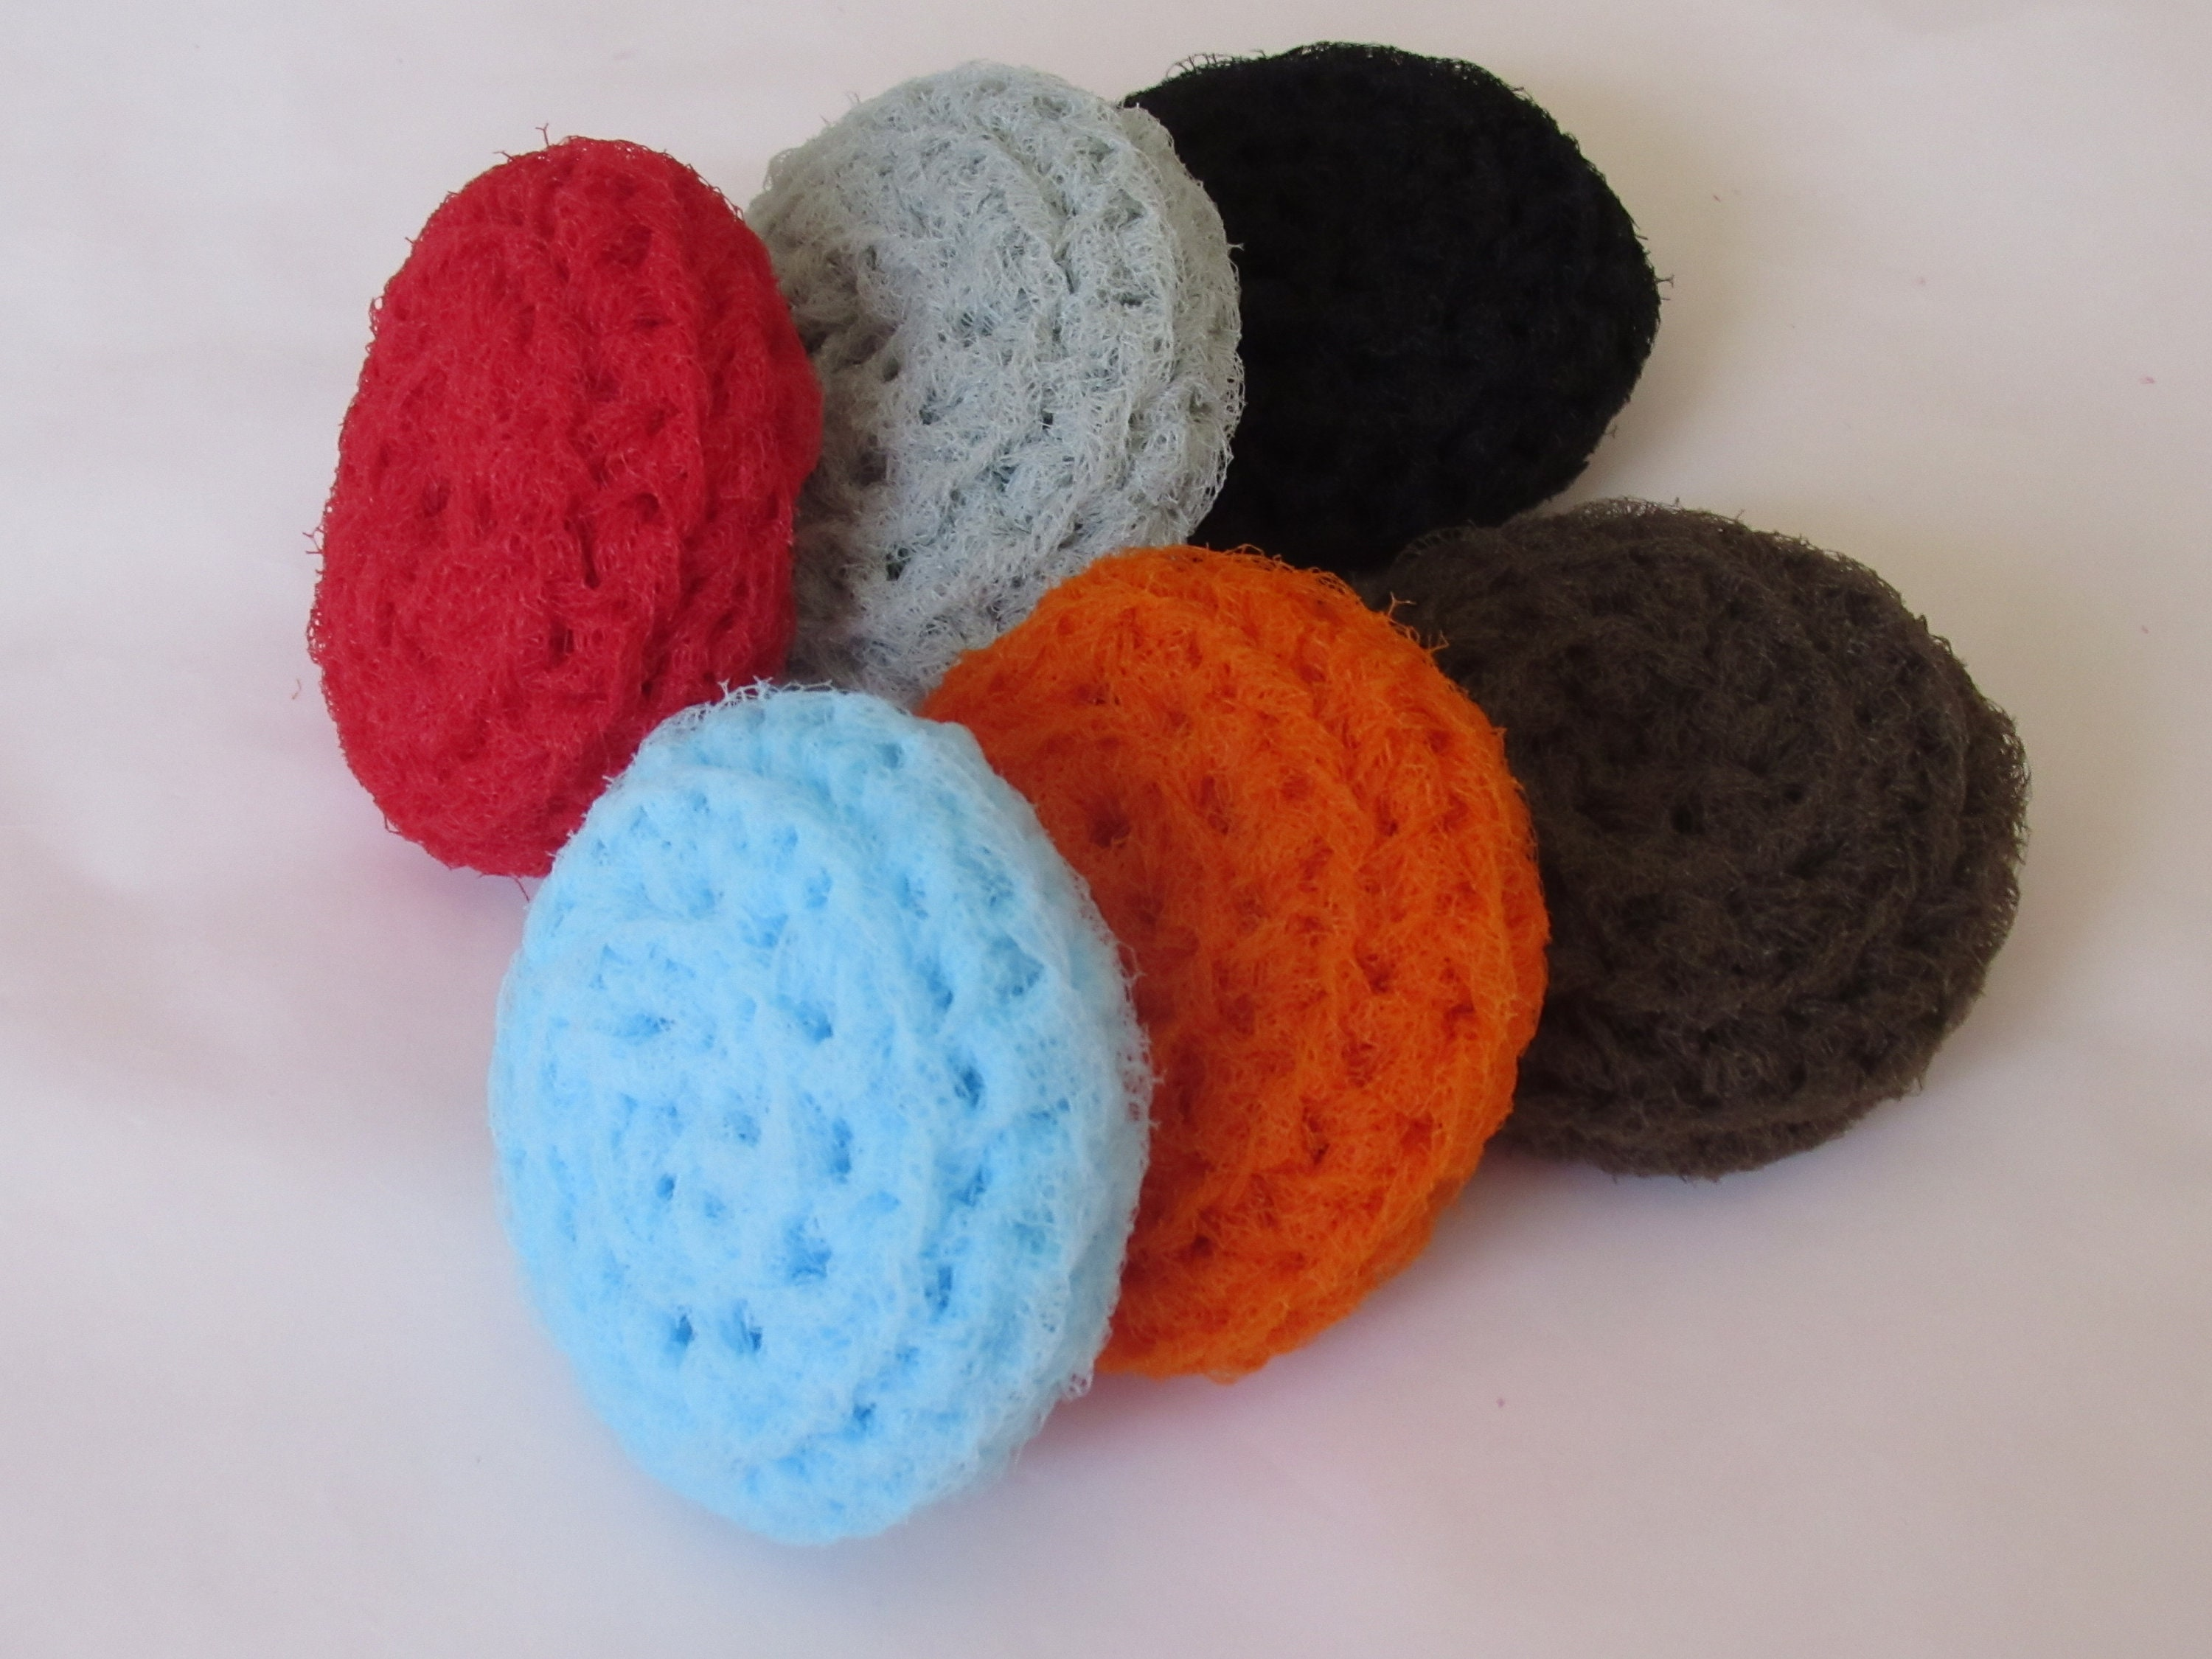 NYLON NET POT SCRUBBIES 6 Brown